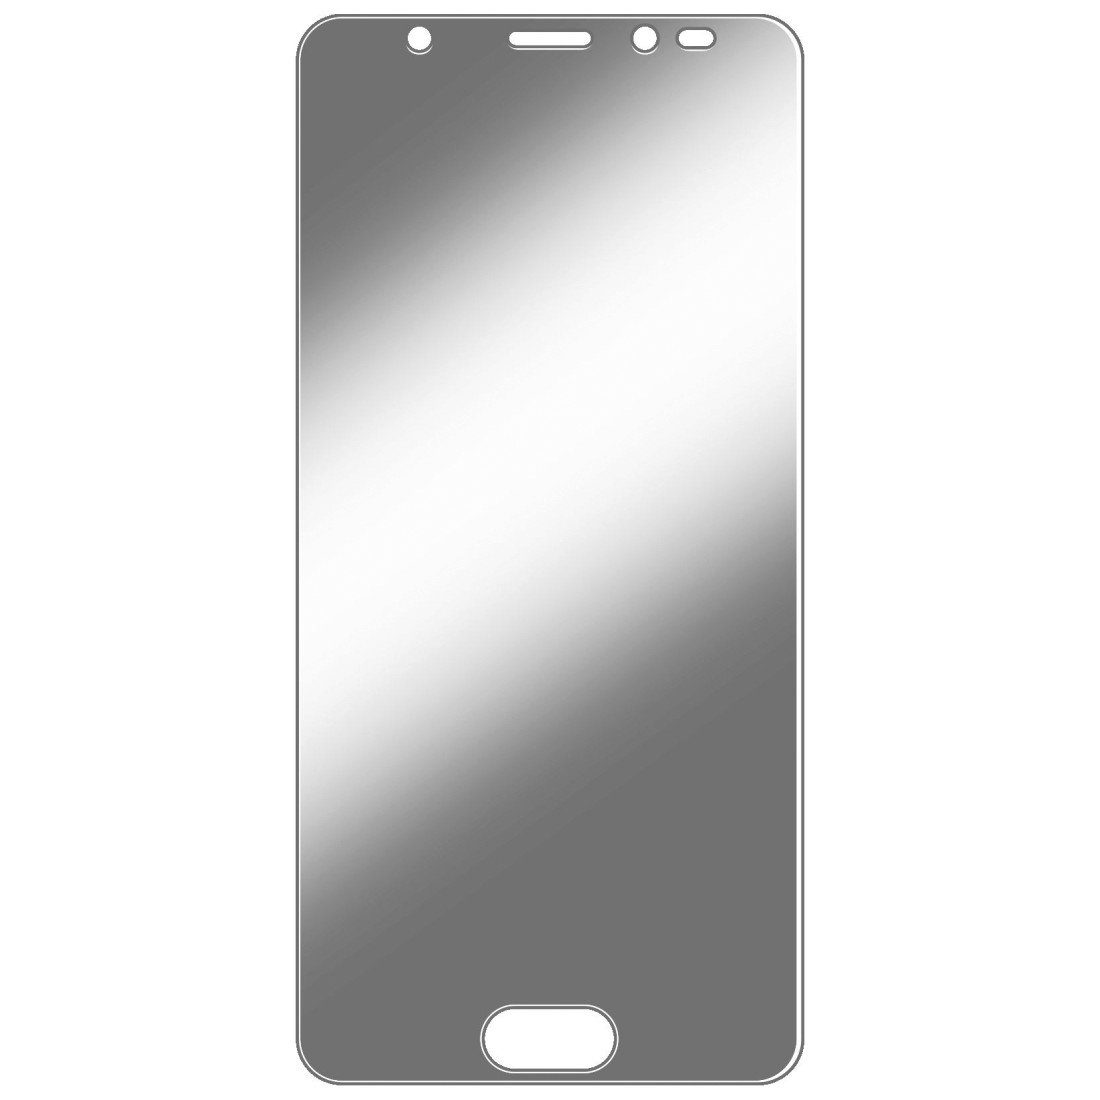 Hama Display-Schutzfolie Crystal Clear für Wiko U Feel Prime, 2